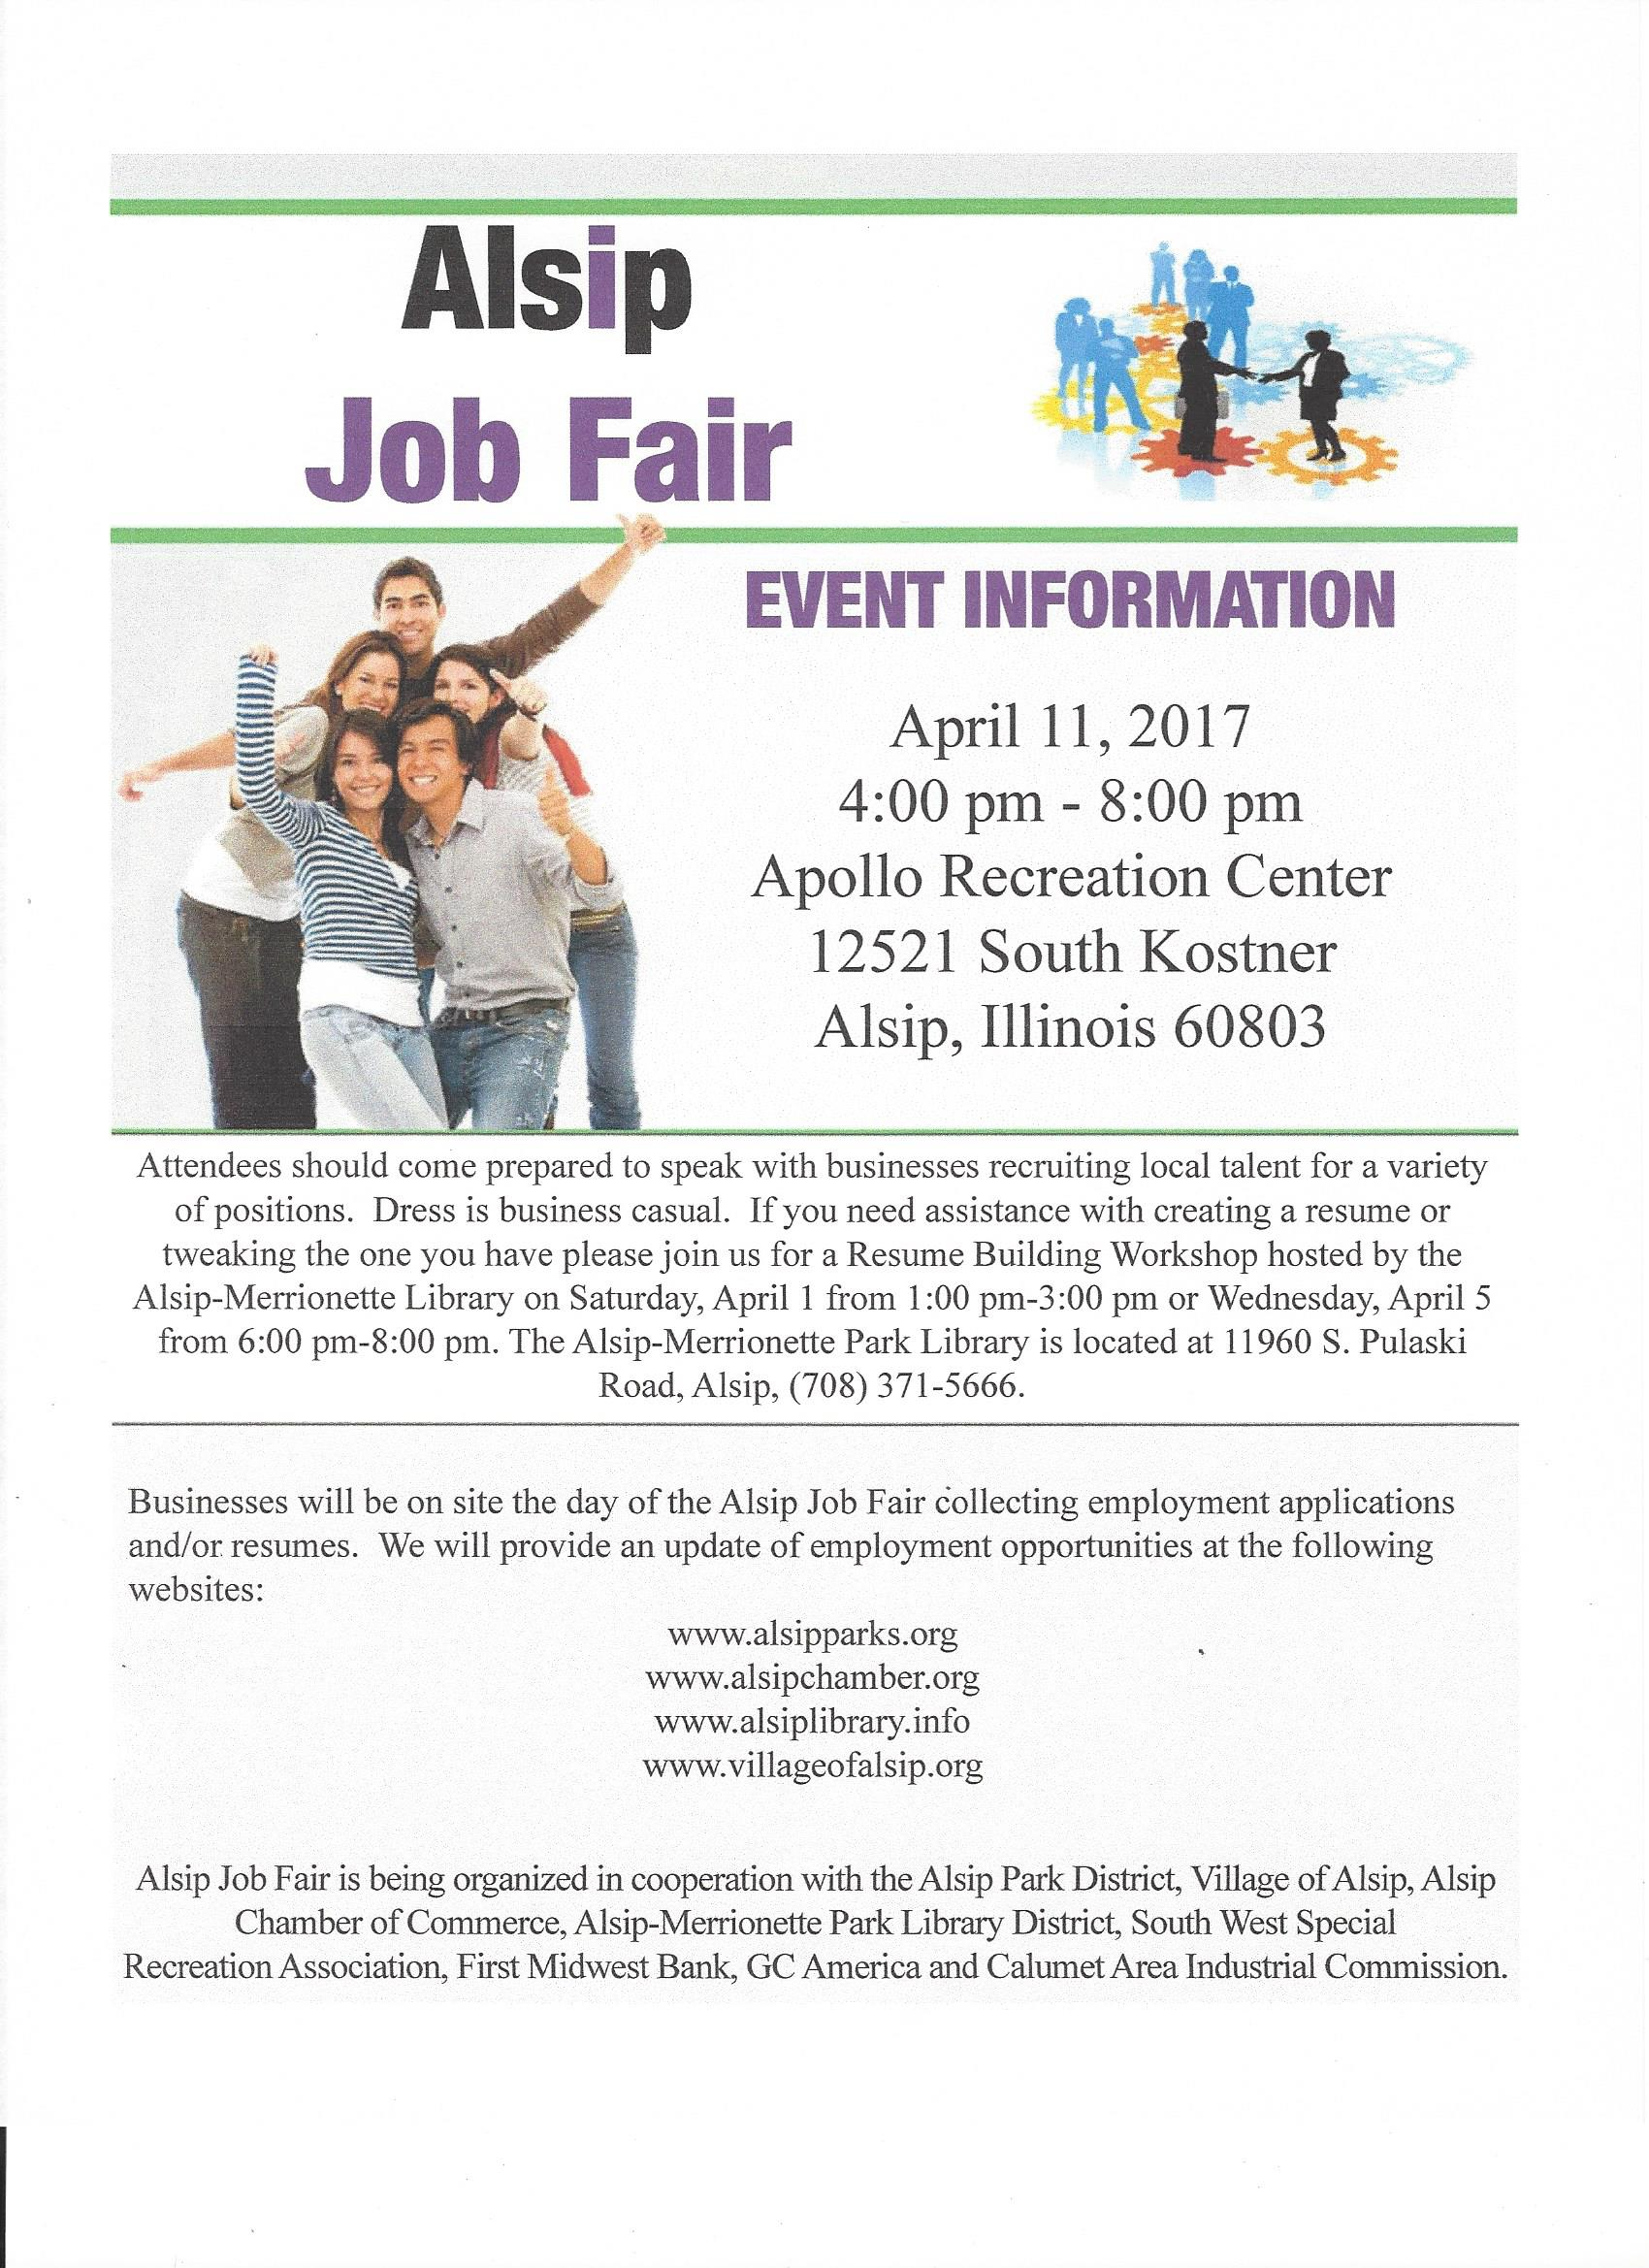 alsip job fair resume building workshop april 5 2017